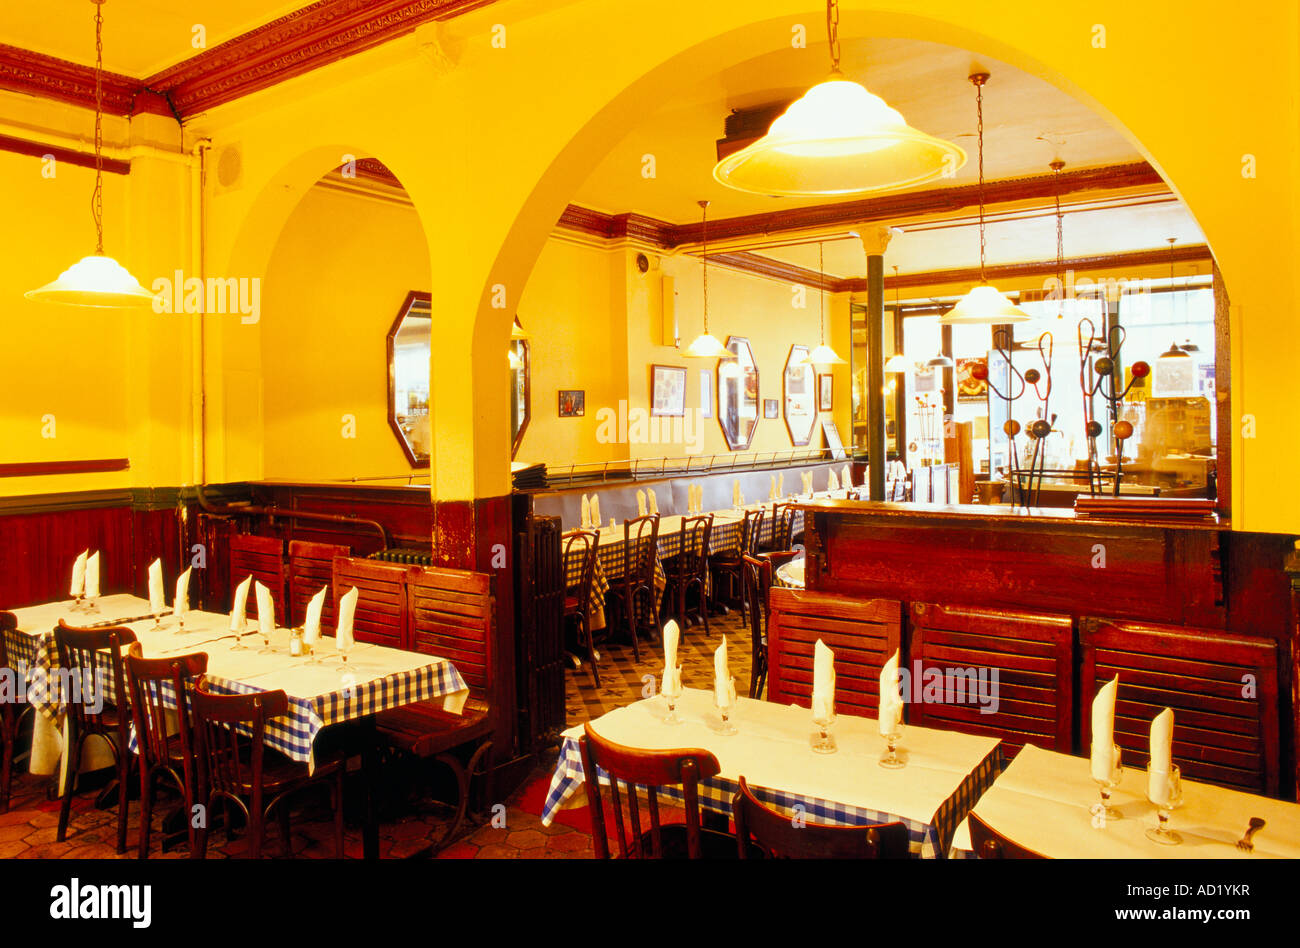 Café Moderne Stock Photos & Café Moderne Stock Images - Alamy